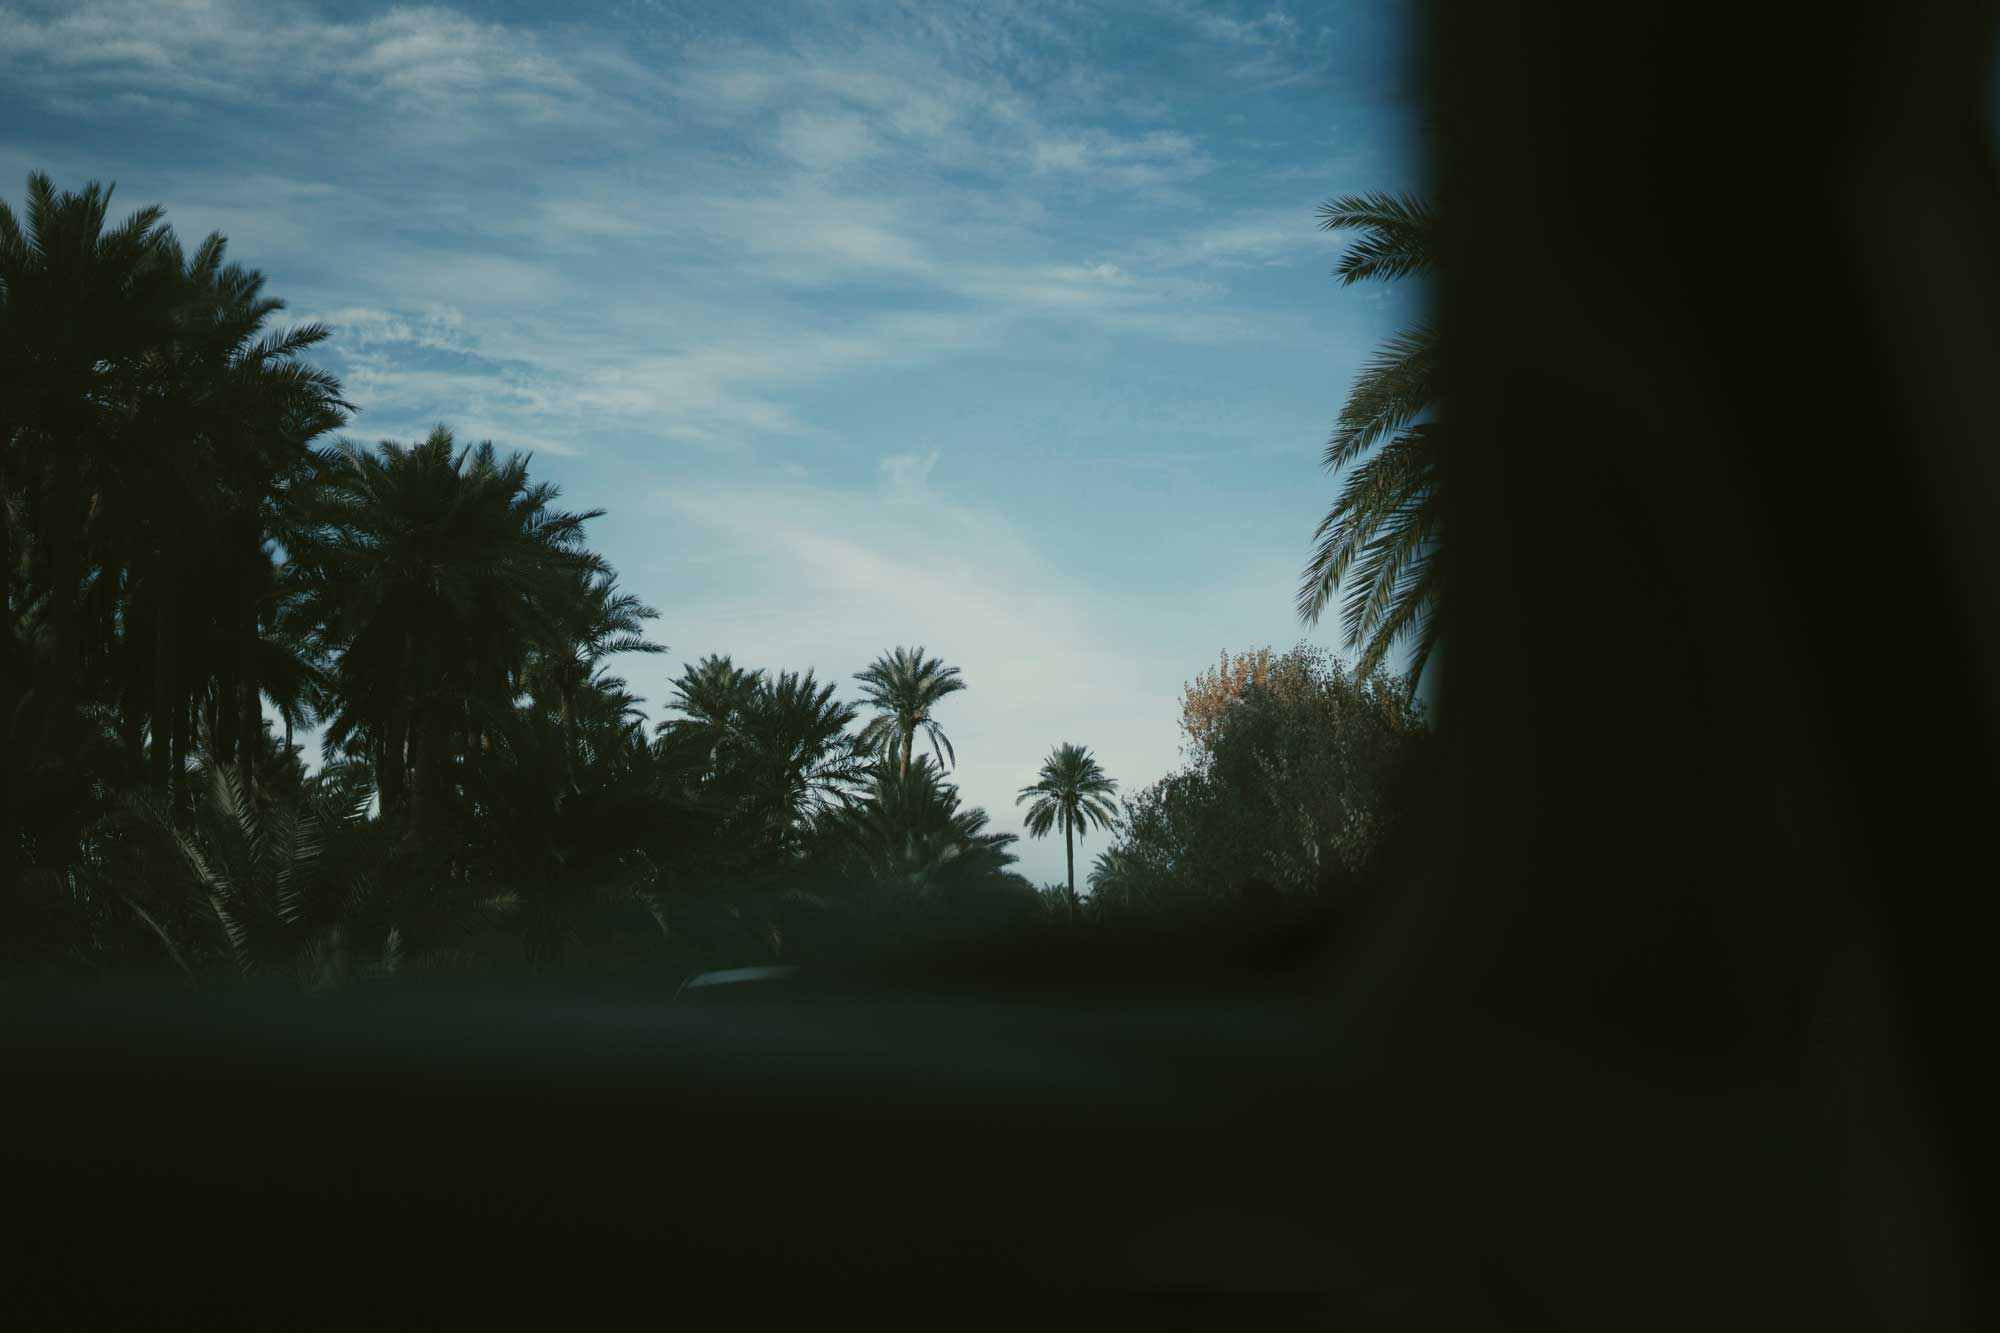 A picturesque scene of palm trees against a blue sky as seen from inside a car.